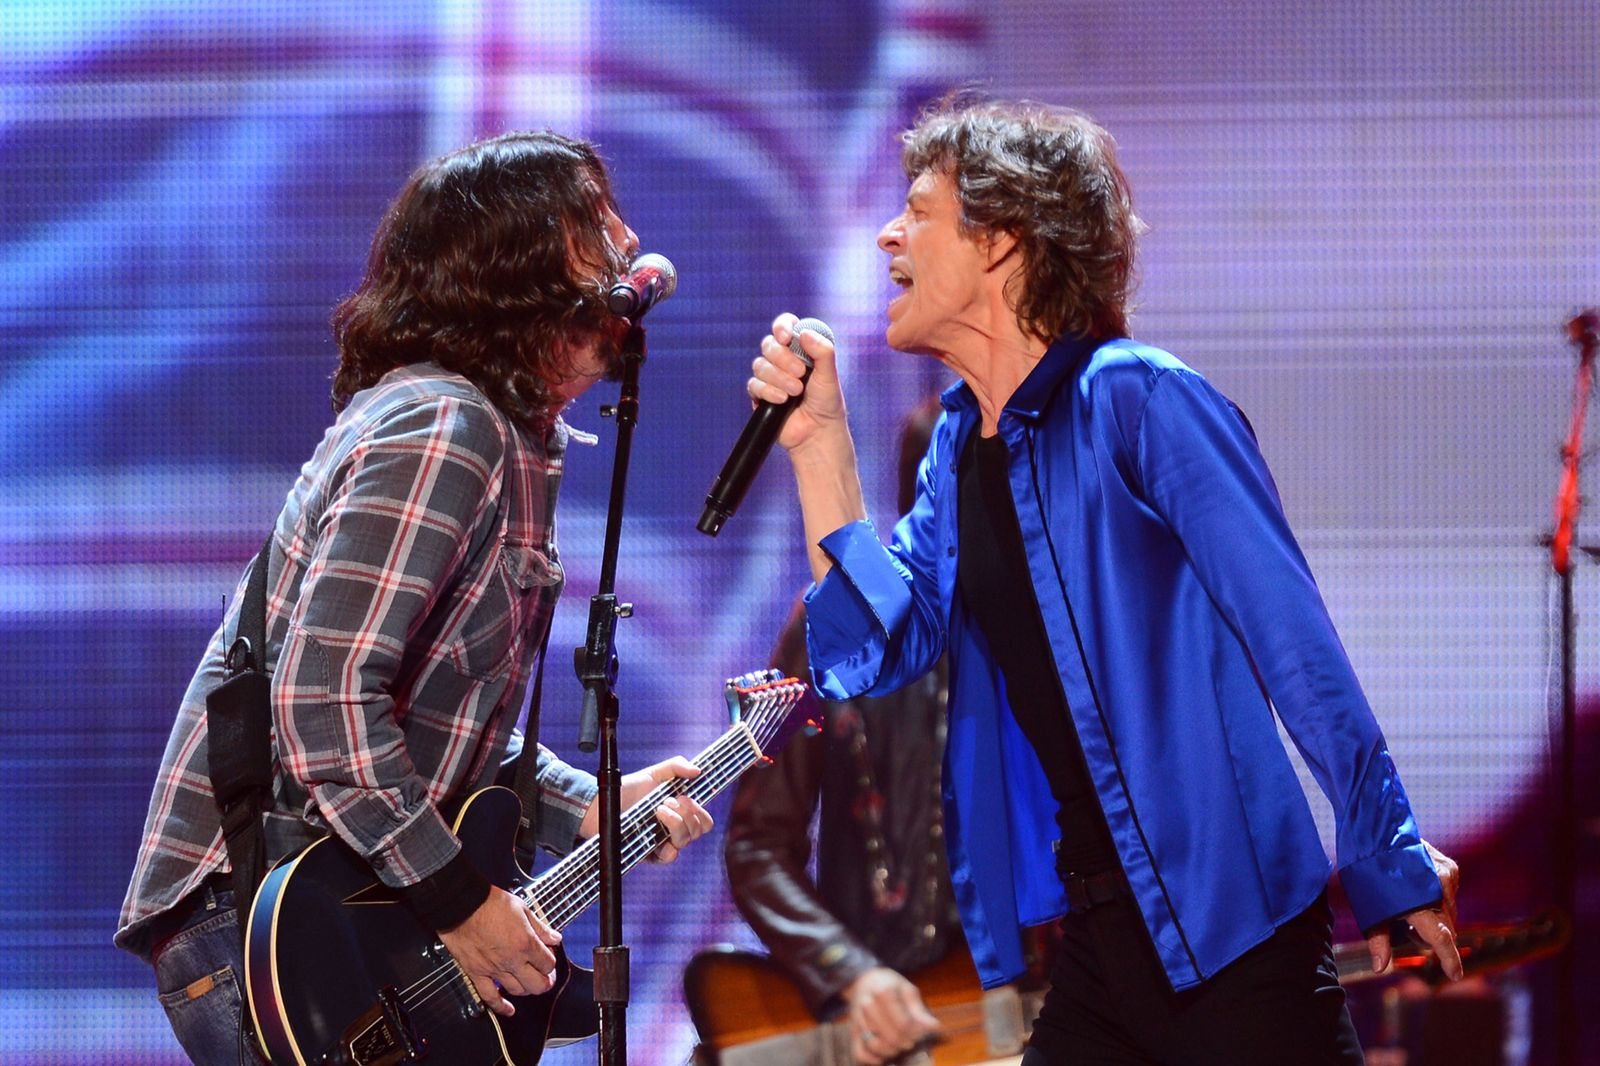 The Rolling Stones Perform With Dave Grohl In Anaheim